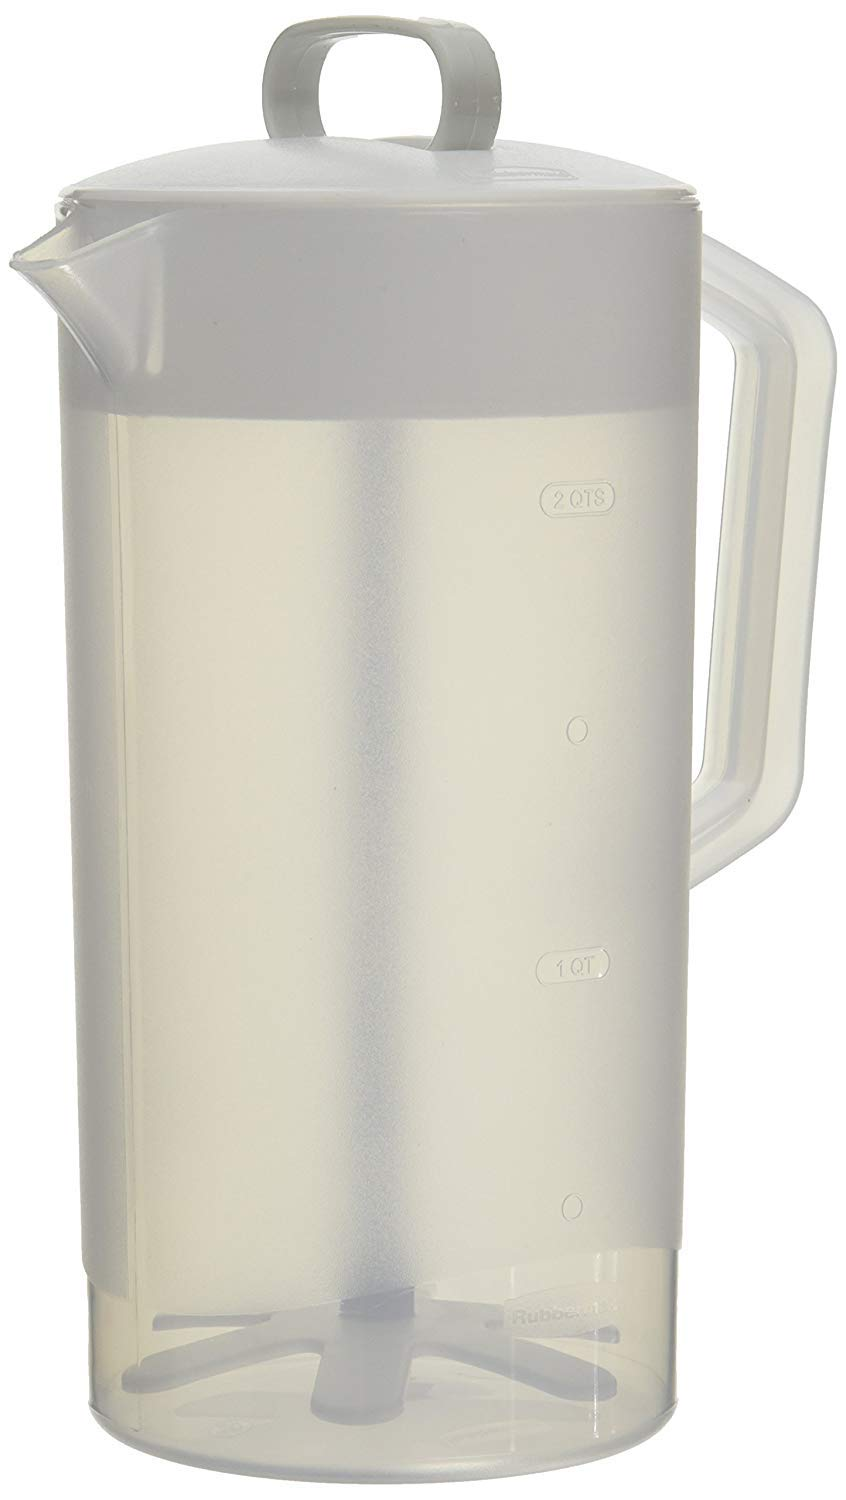 "Rubbermaid - Servin Saver White Mixing Pitcher 2 Qt, Plastic [4 3/4"" Dia] (Single Unit, White Color)"